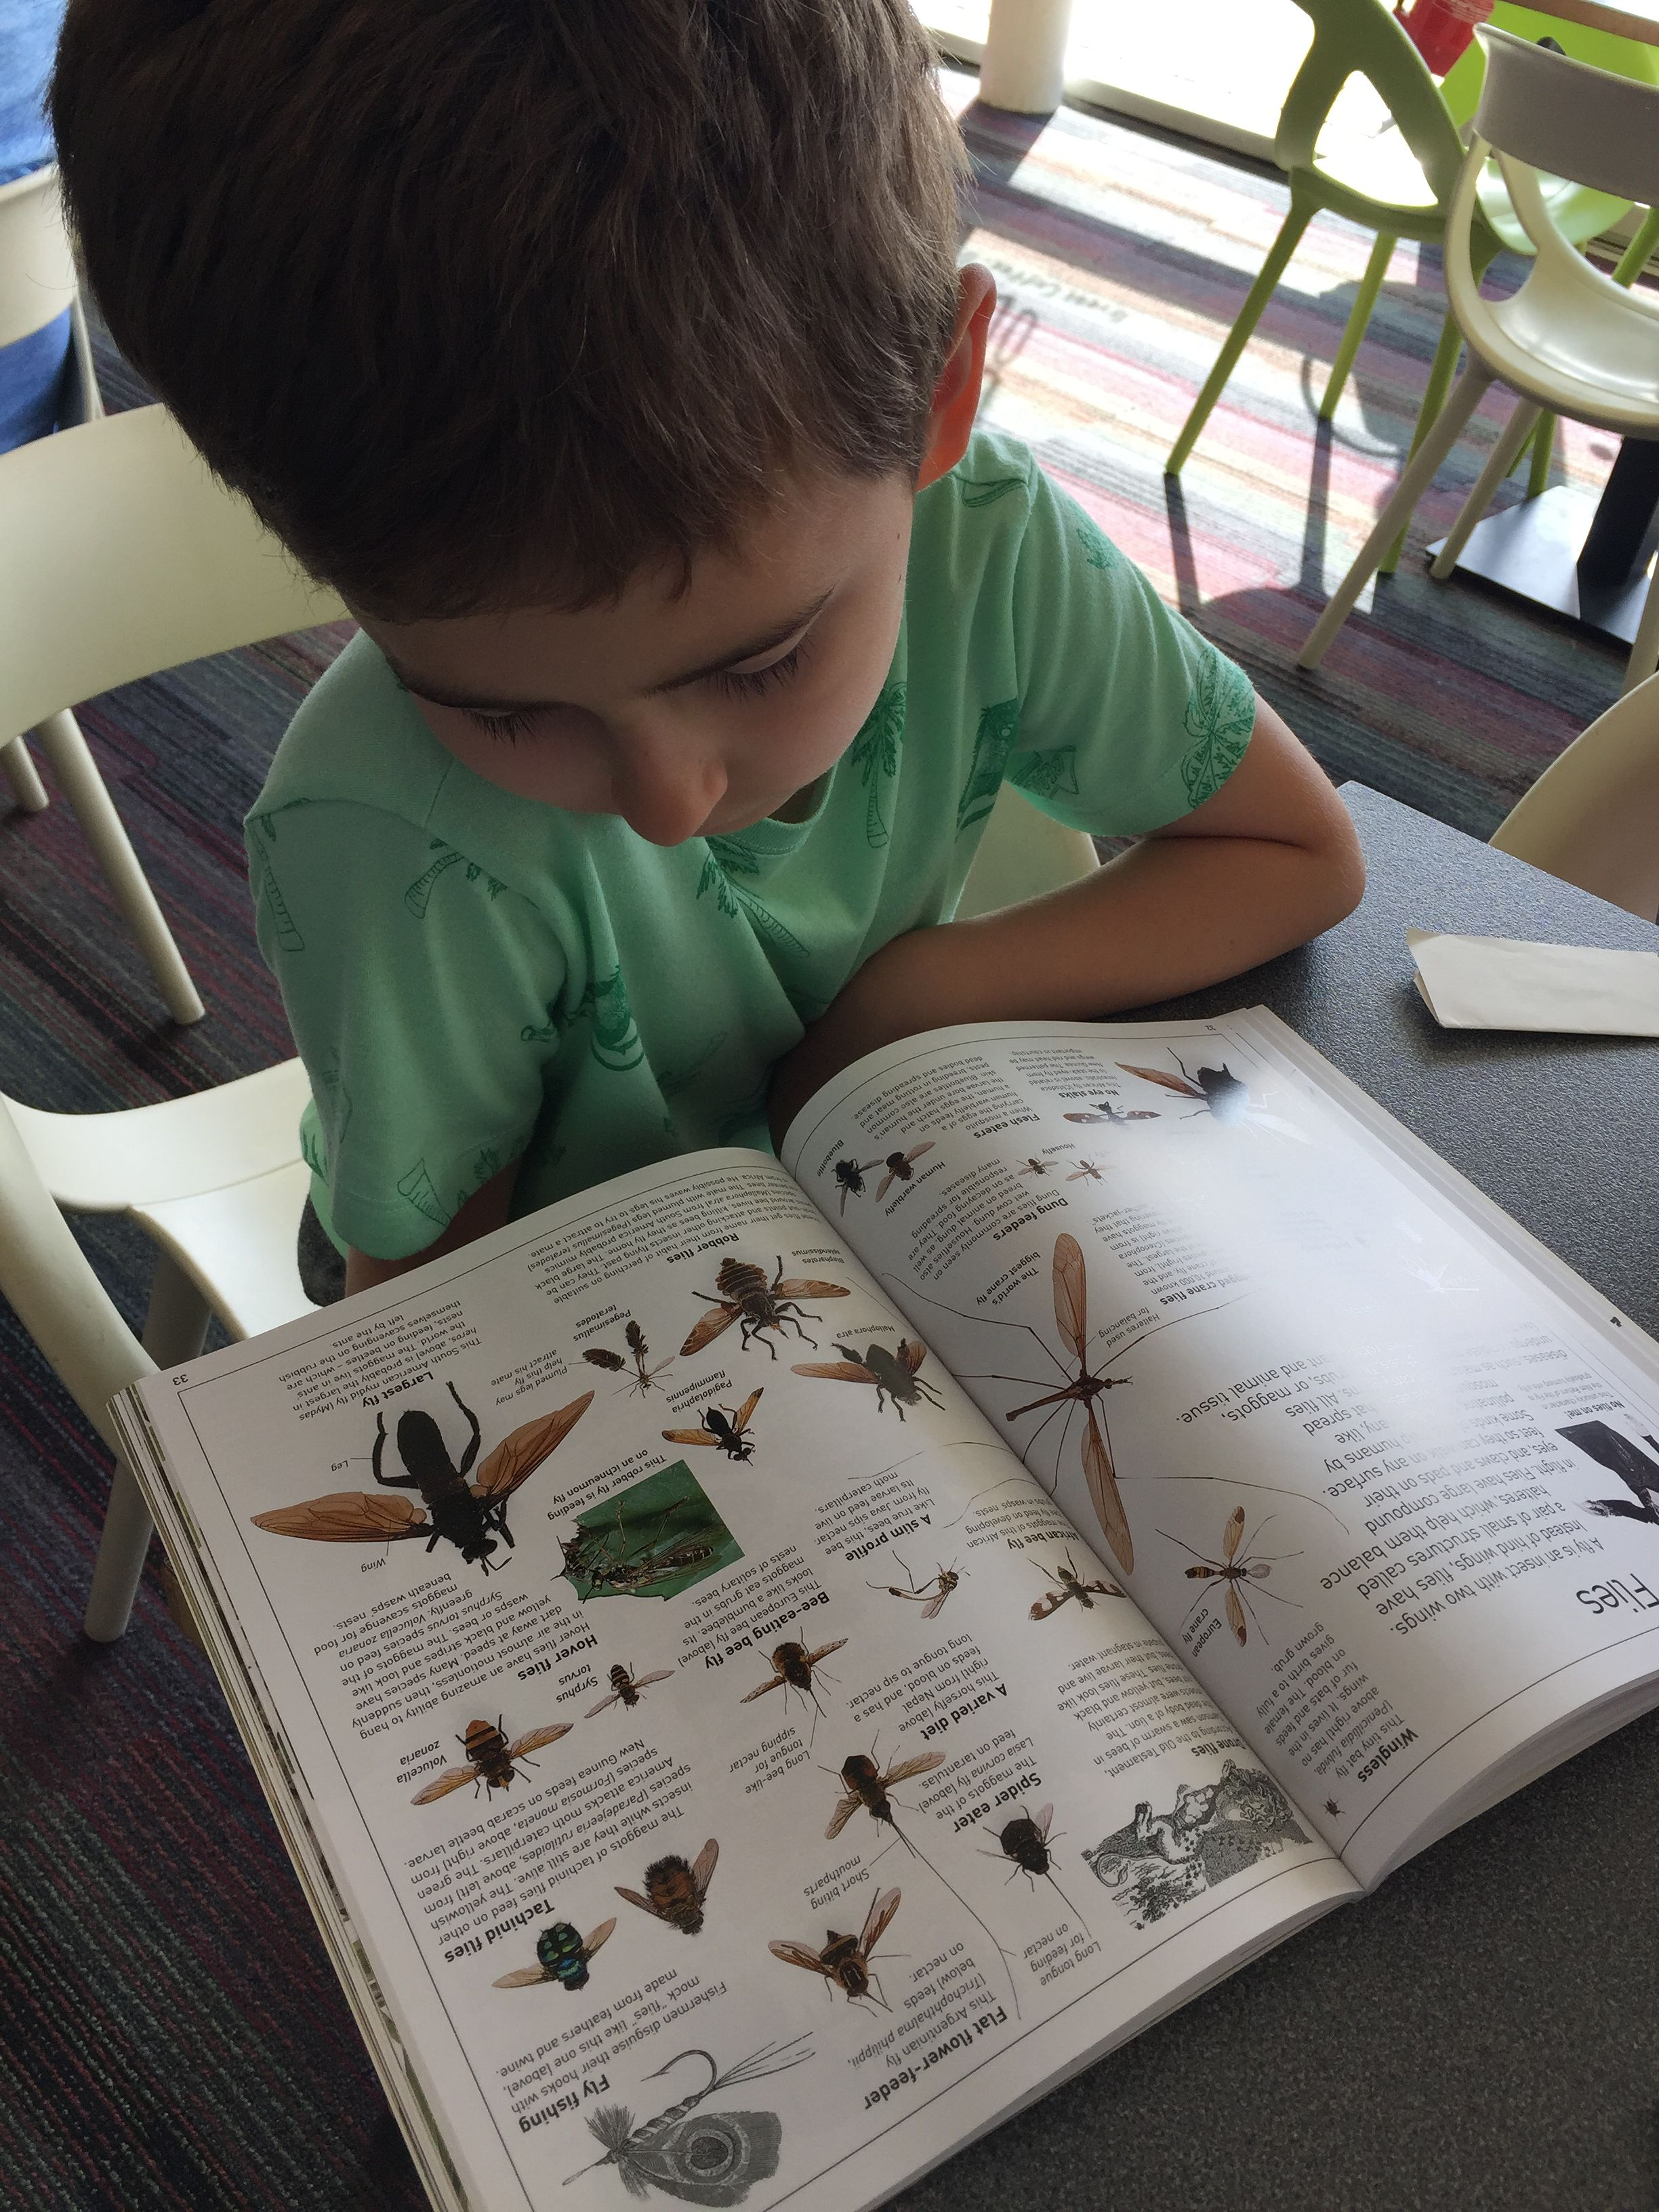 reading his DK Insect book